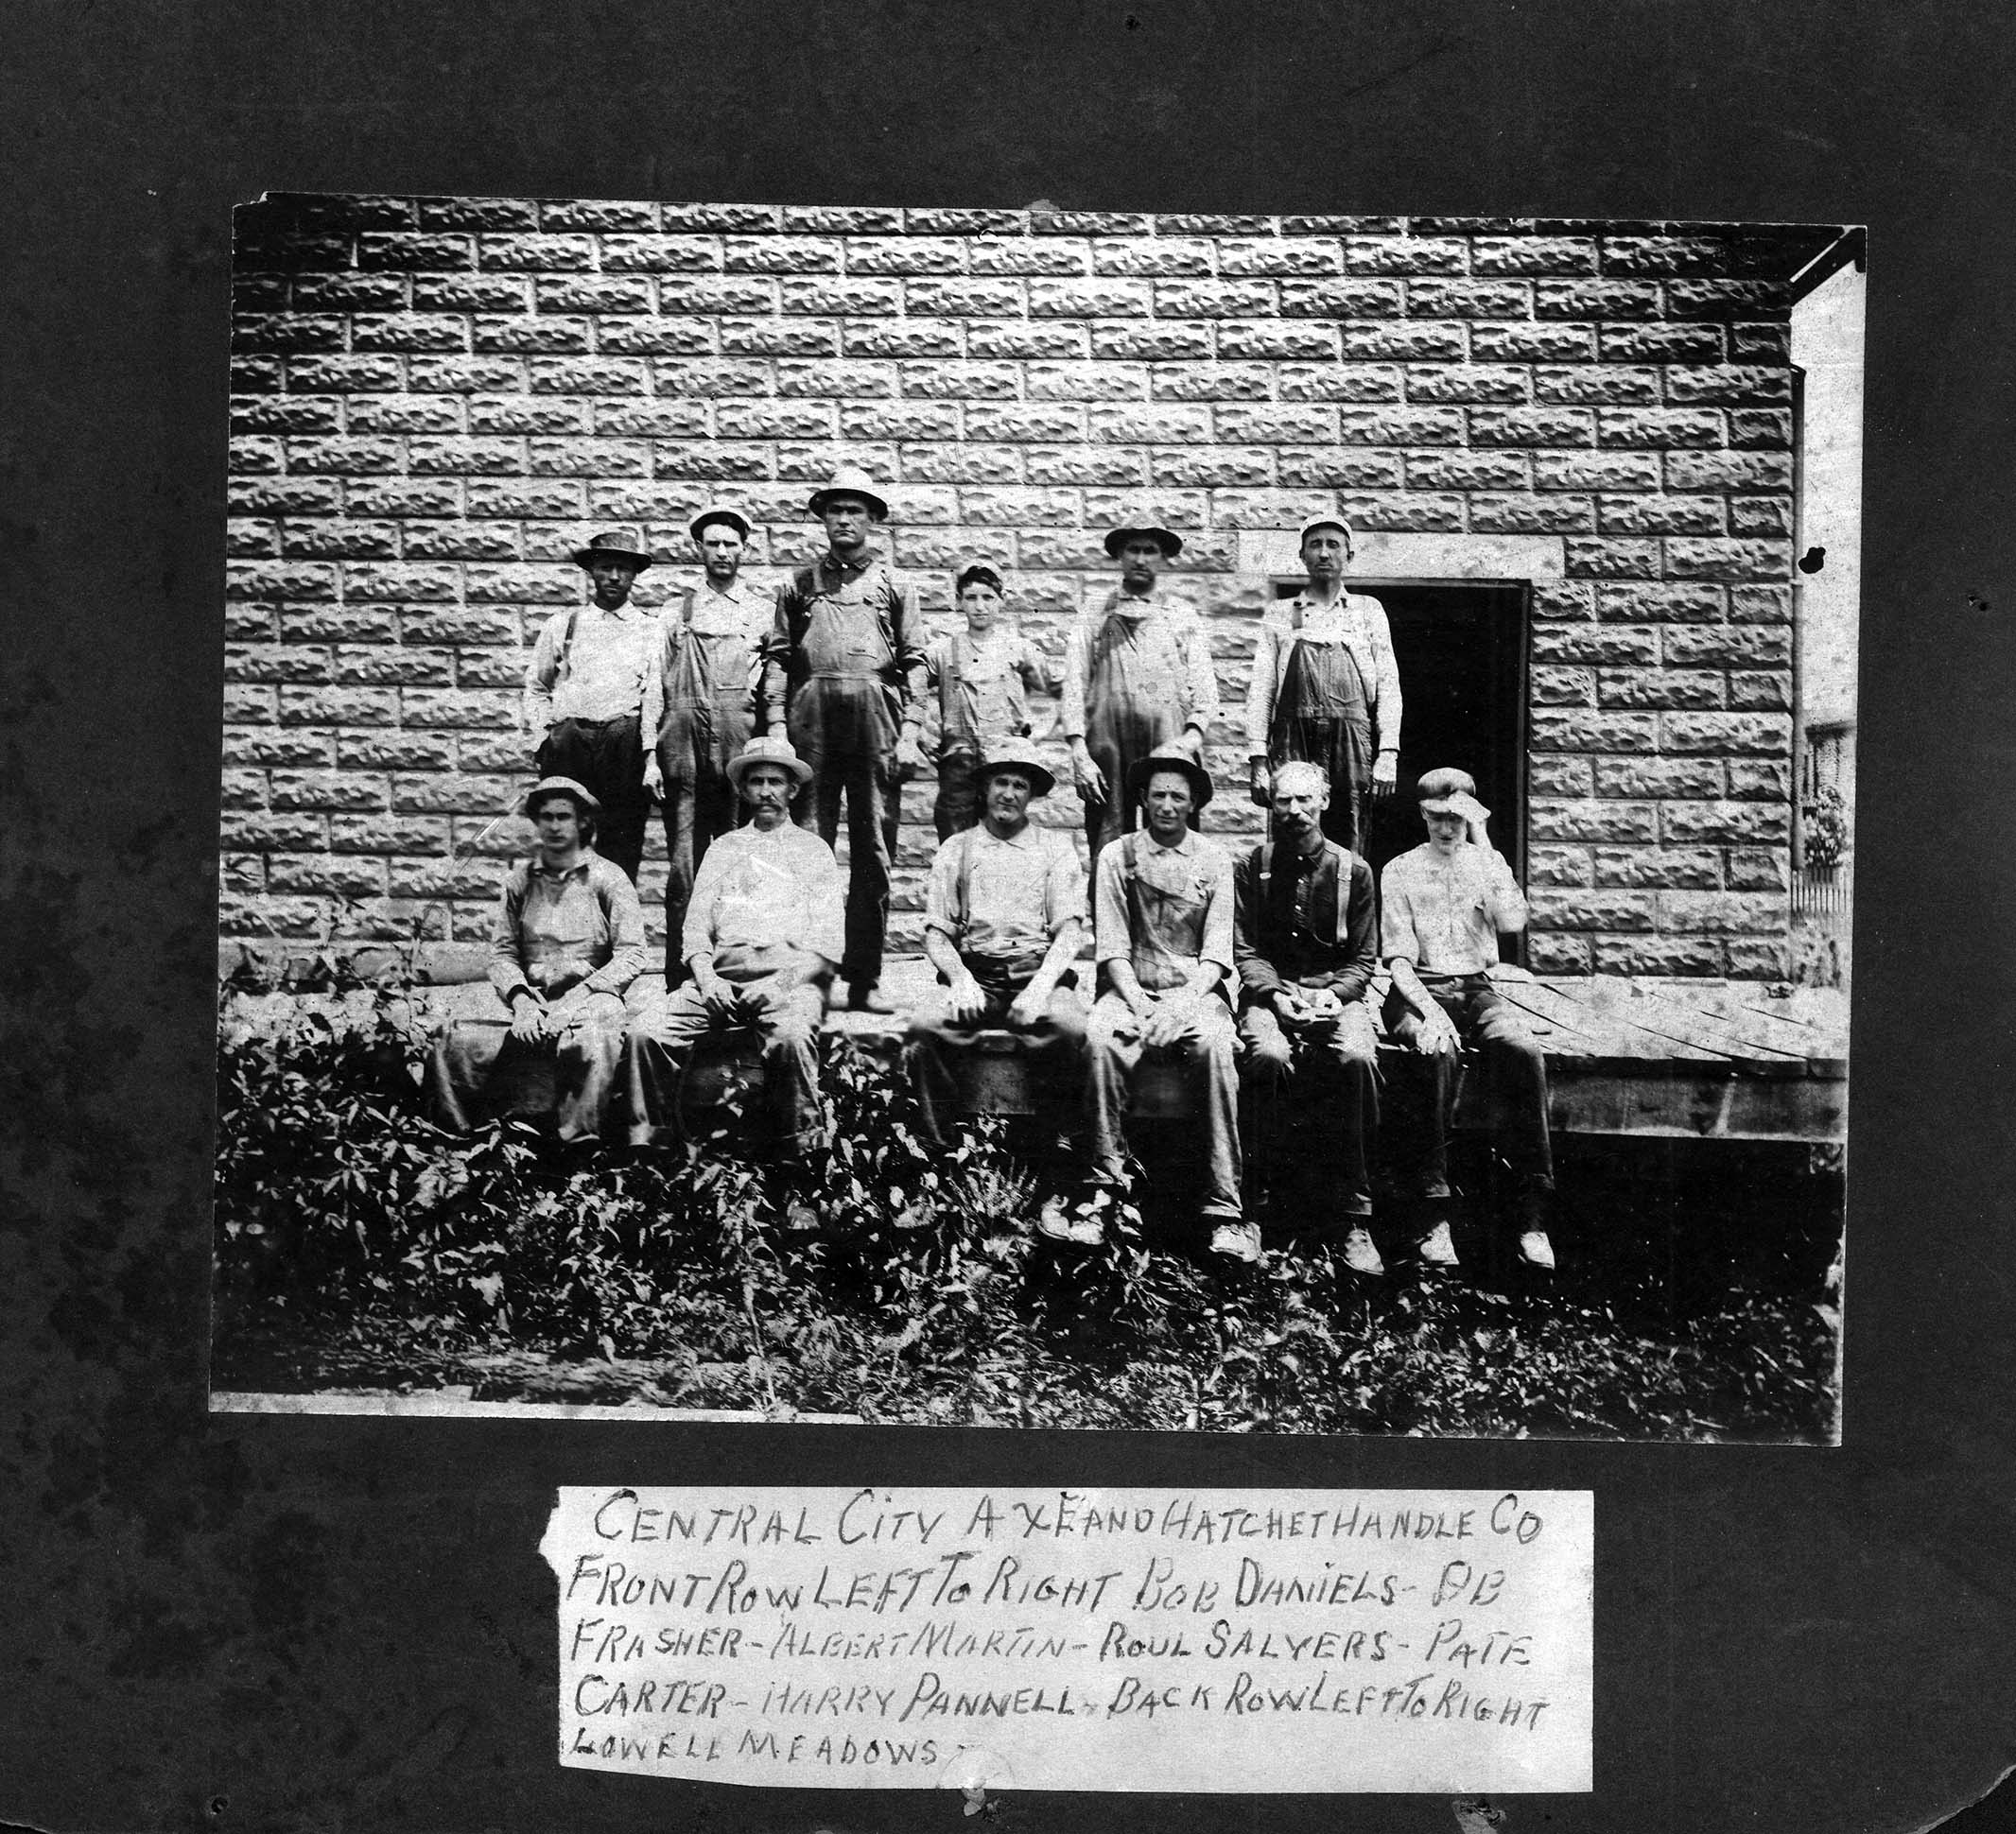 Company employees around 1900. The photograph notably calls it the Central City Axe and Hatchet Handle Co. Image courtesy of Marshall University Special Collections.